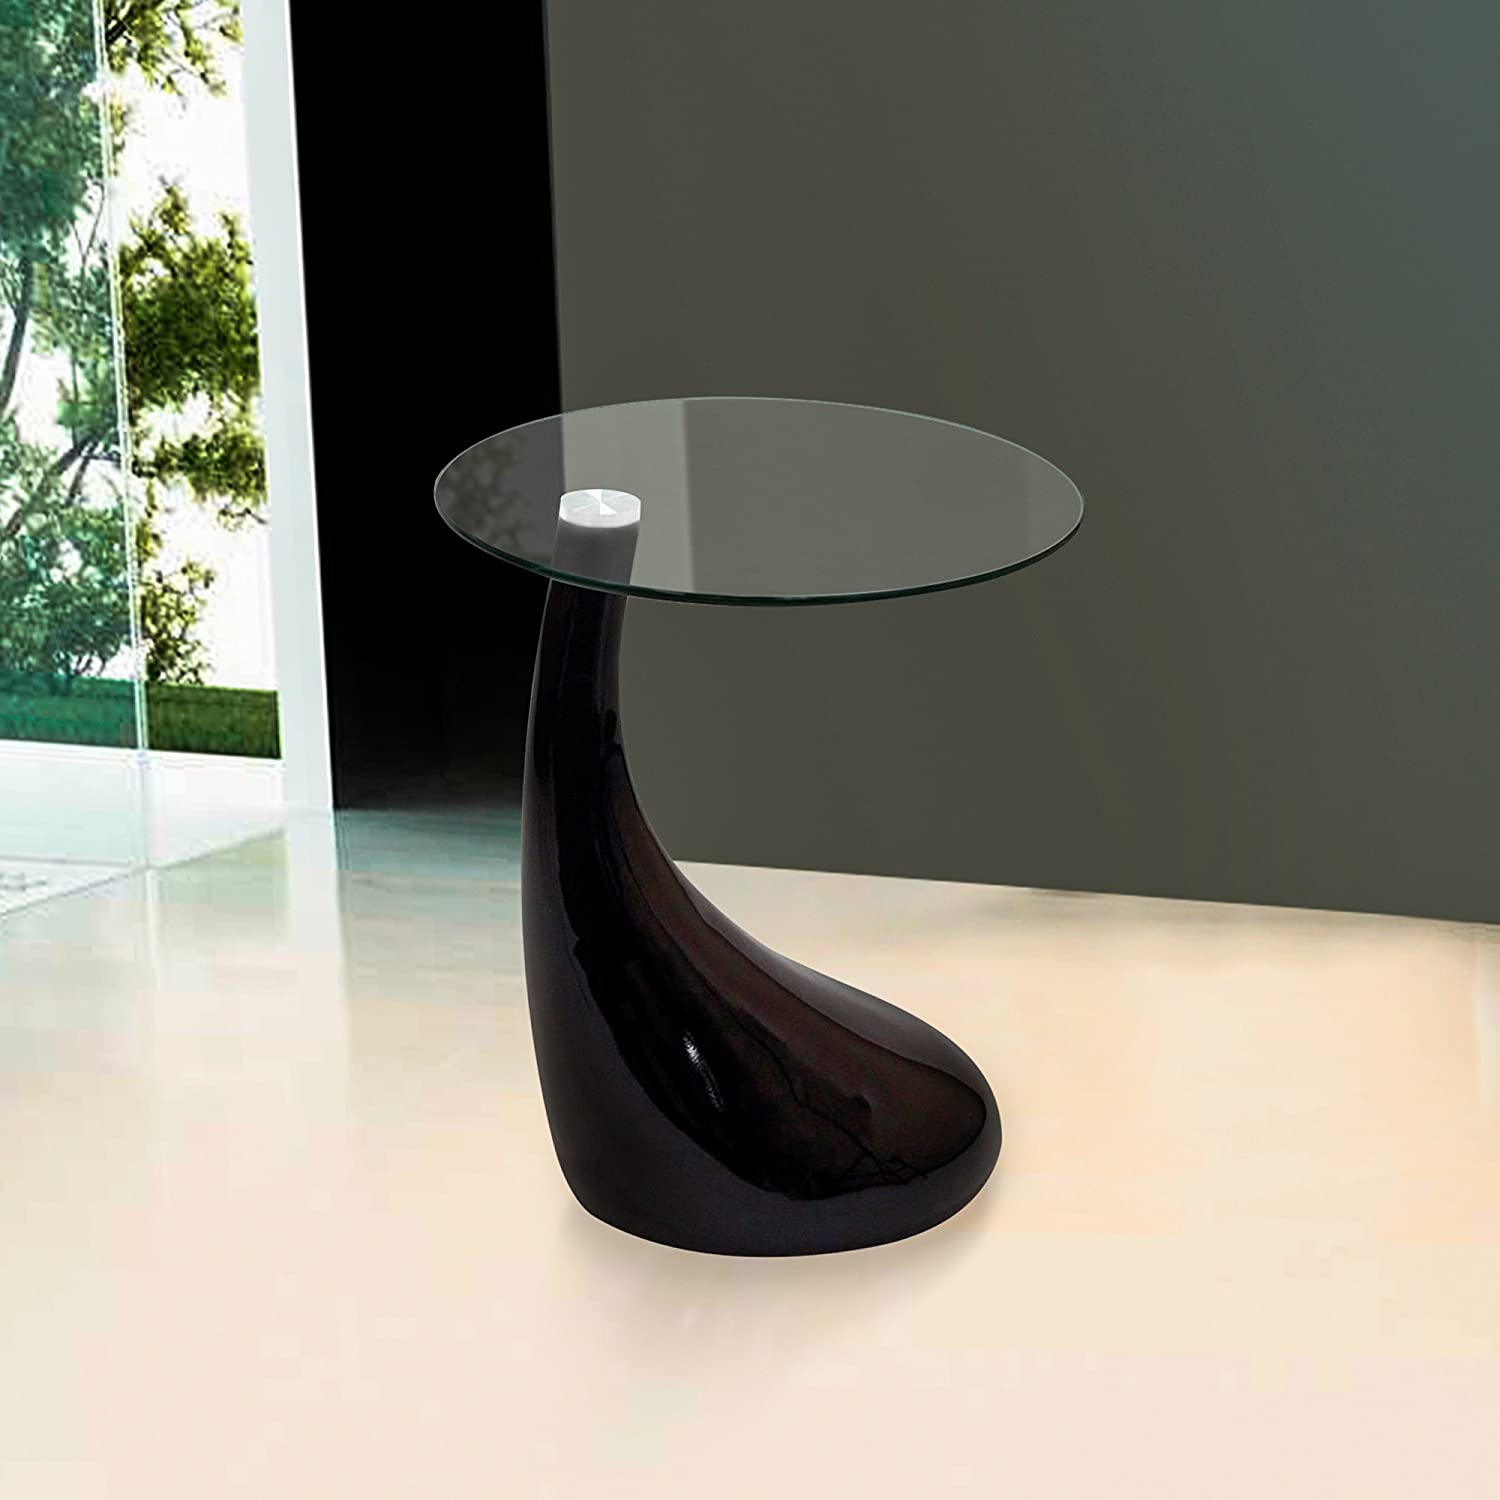 Fab Glass and Mirror Teardrop Side Table, Black